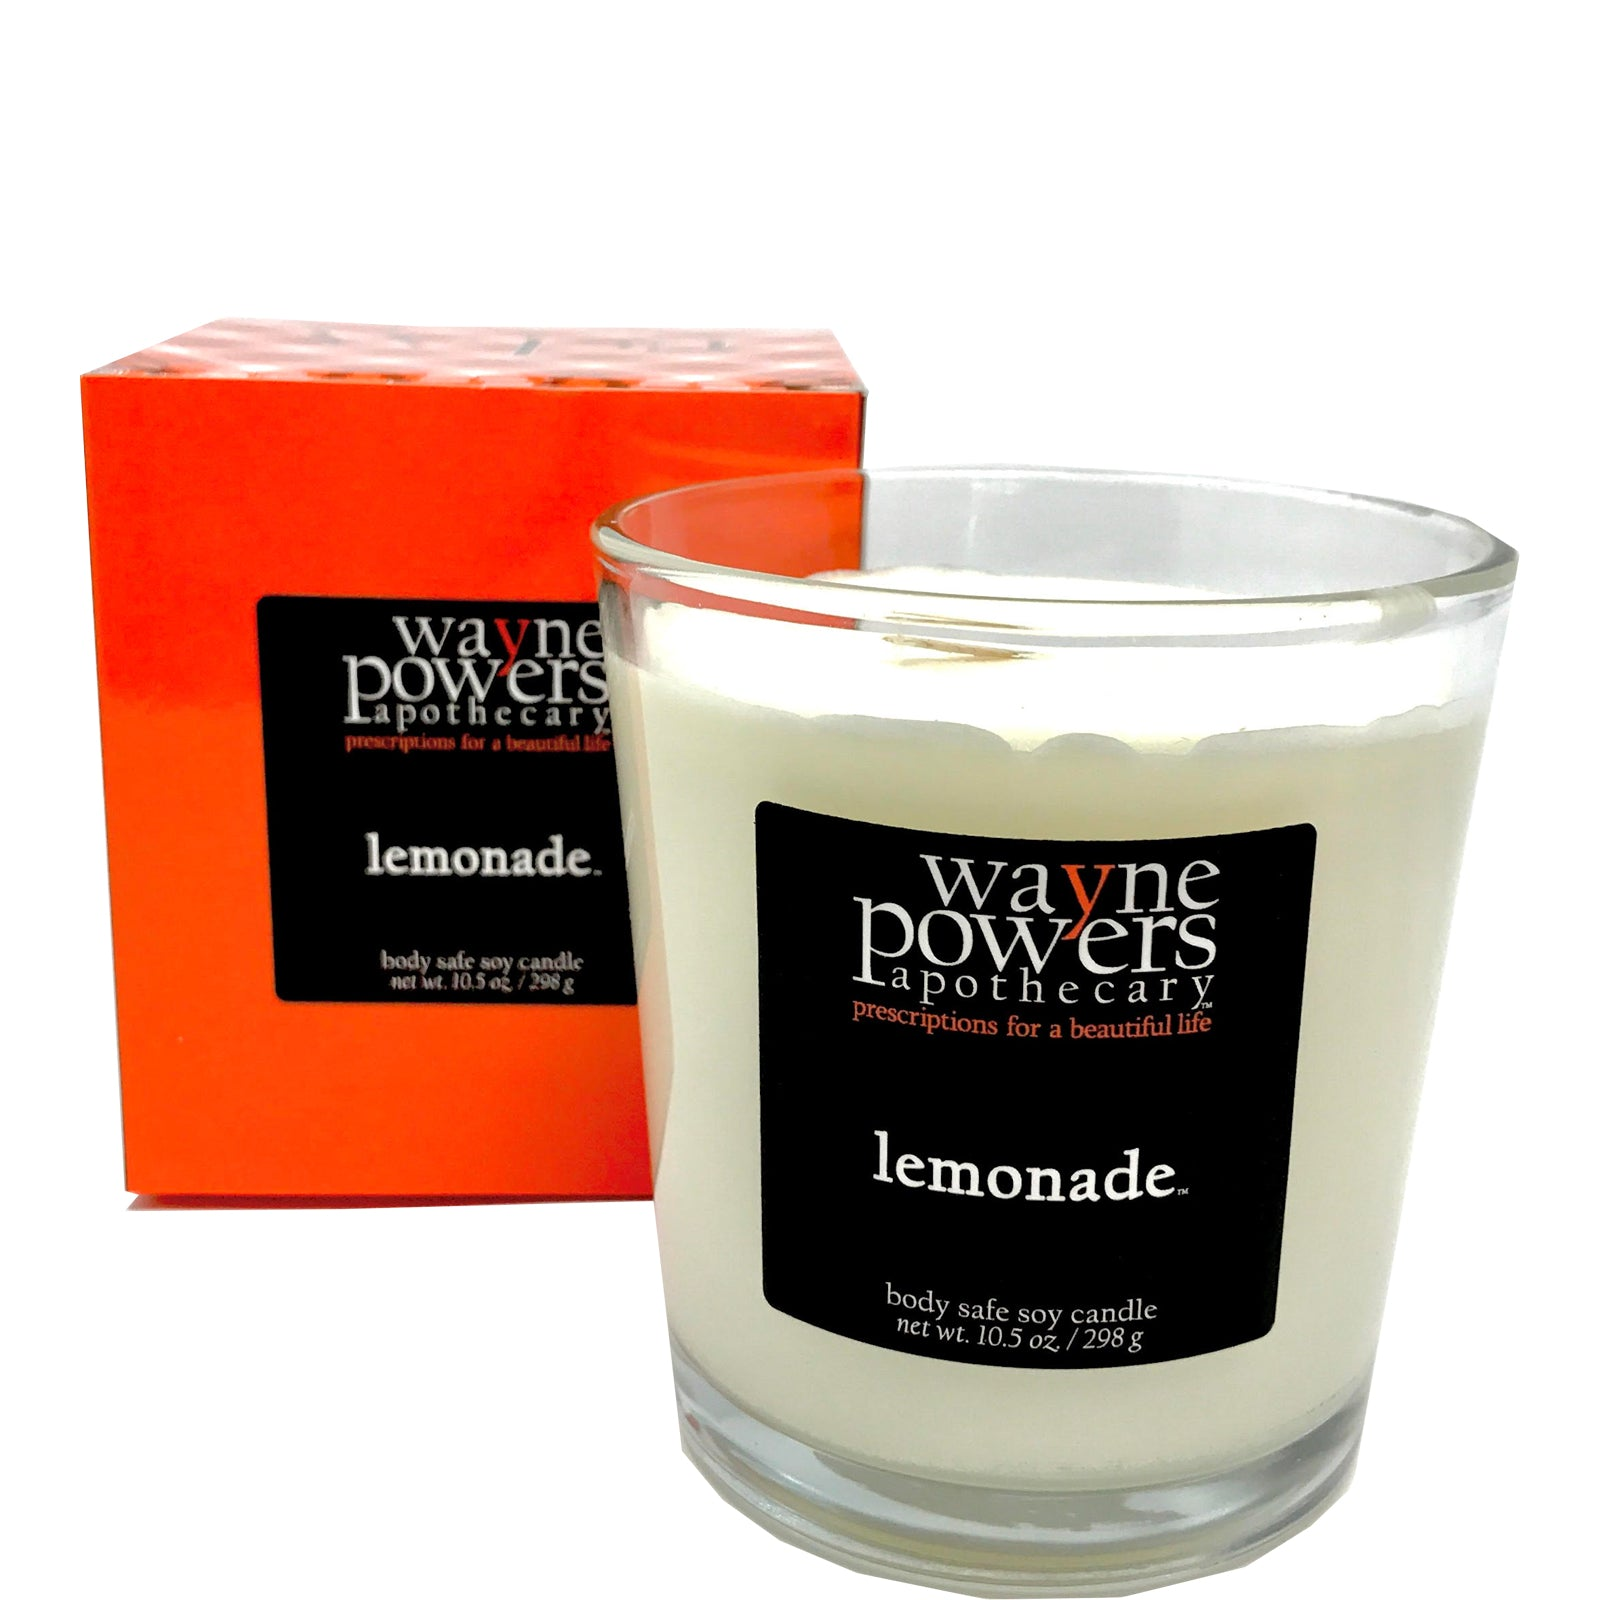 Lemonade Body Safe Soy Candle by Wayne Powers Apothecary